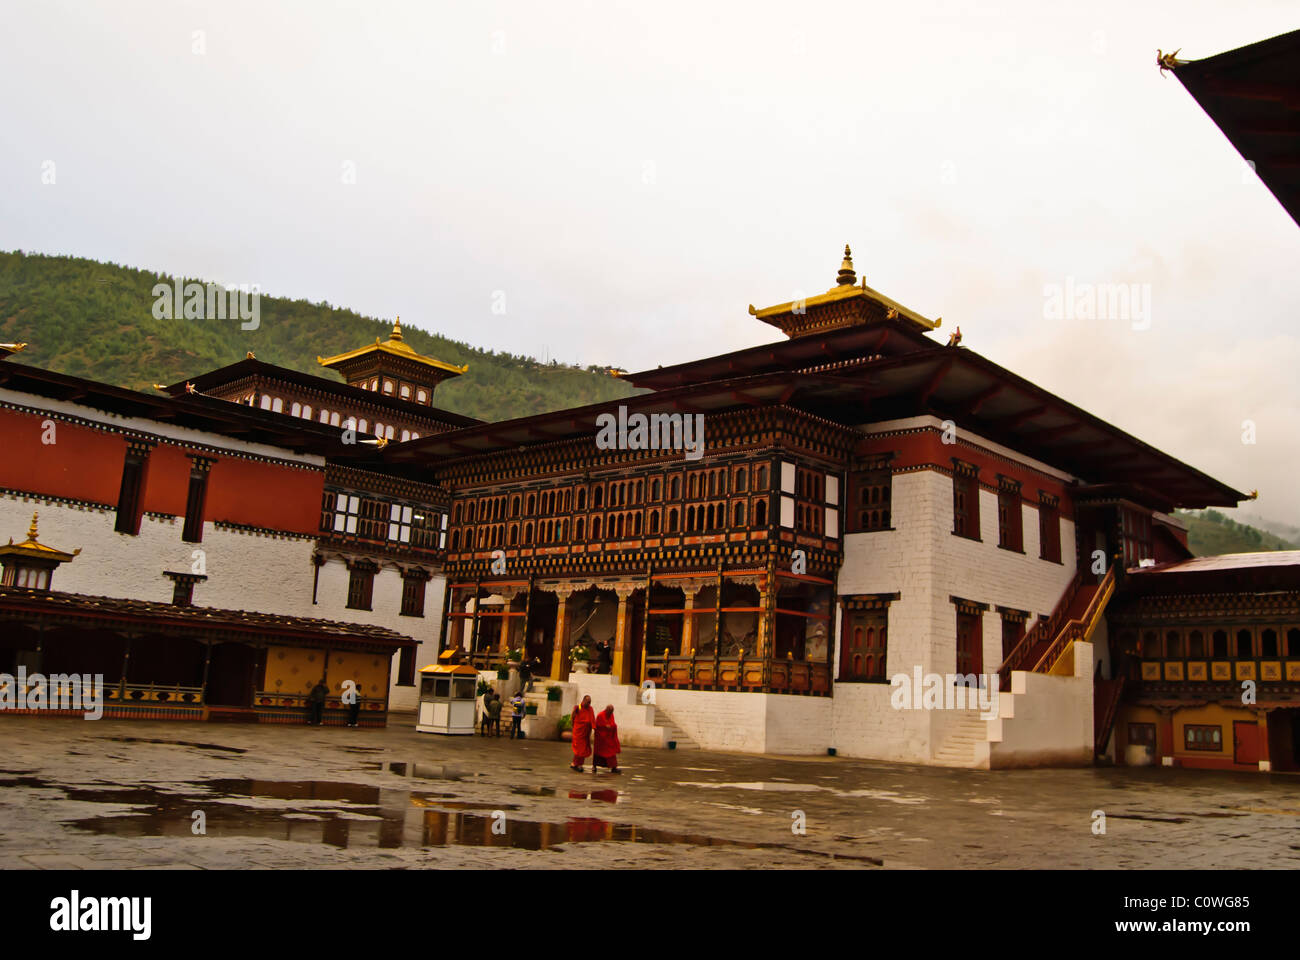 Courtyard and building in Thimphu Dzong, Thimphu, Bhutan - Stock Image